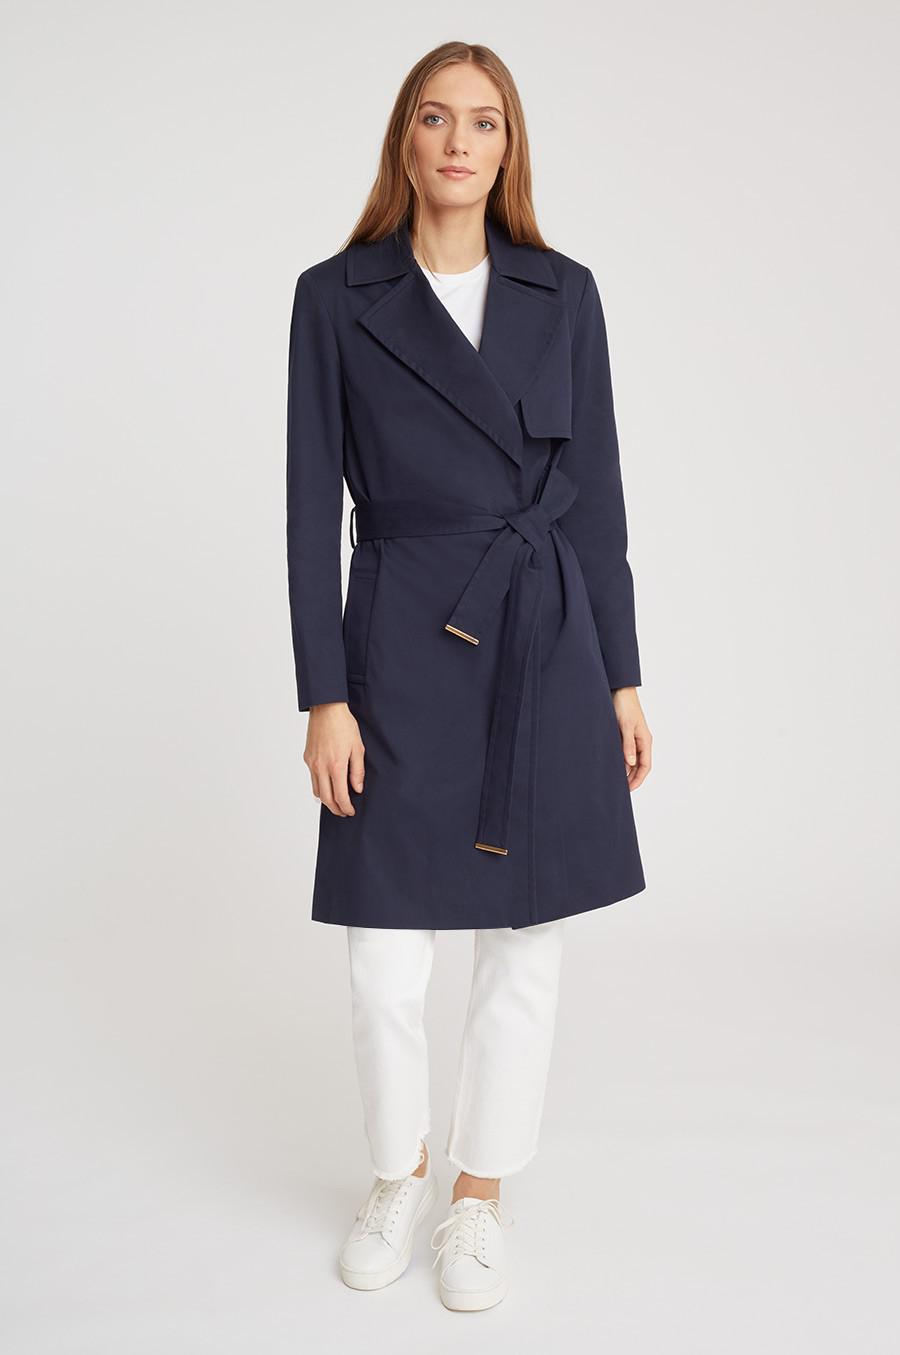 Women's Classic Trench in Navy | Size: 1